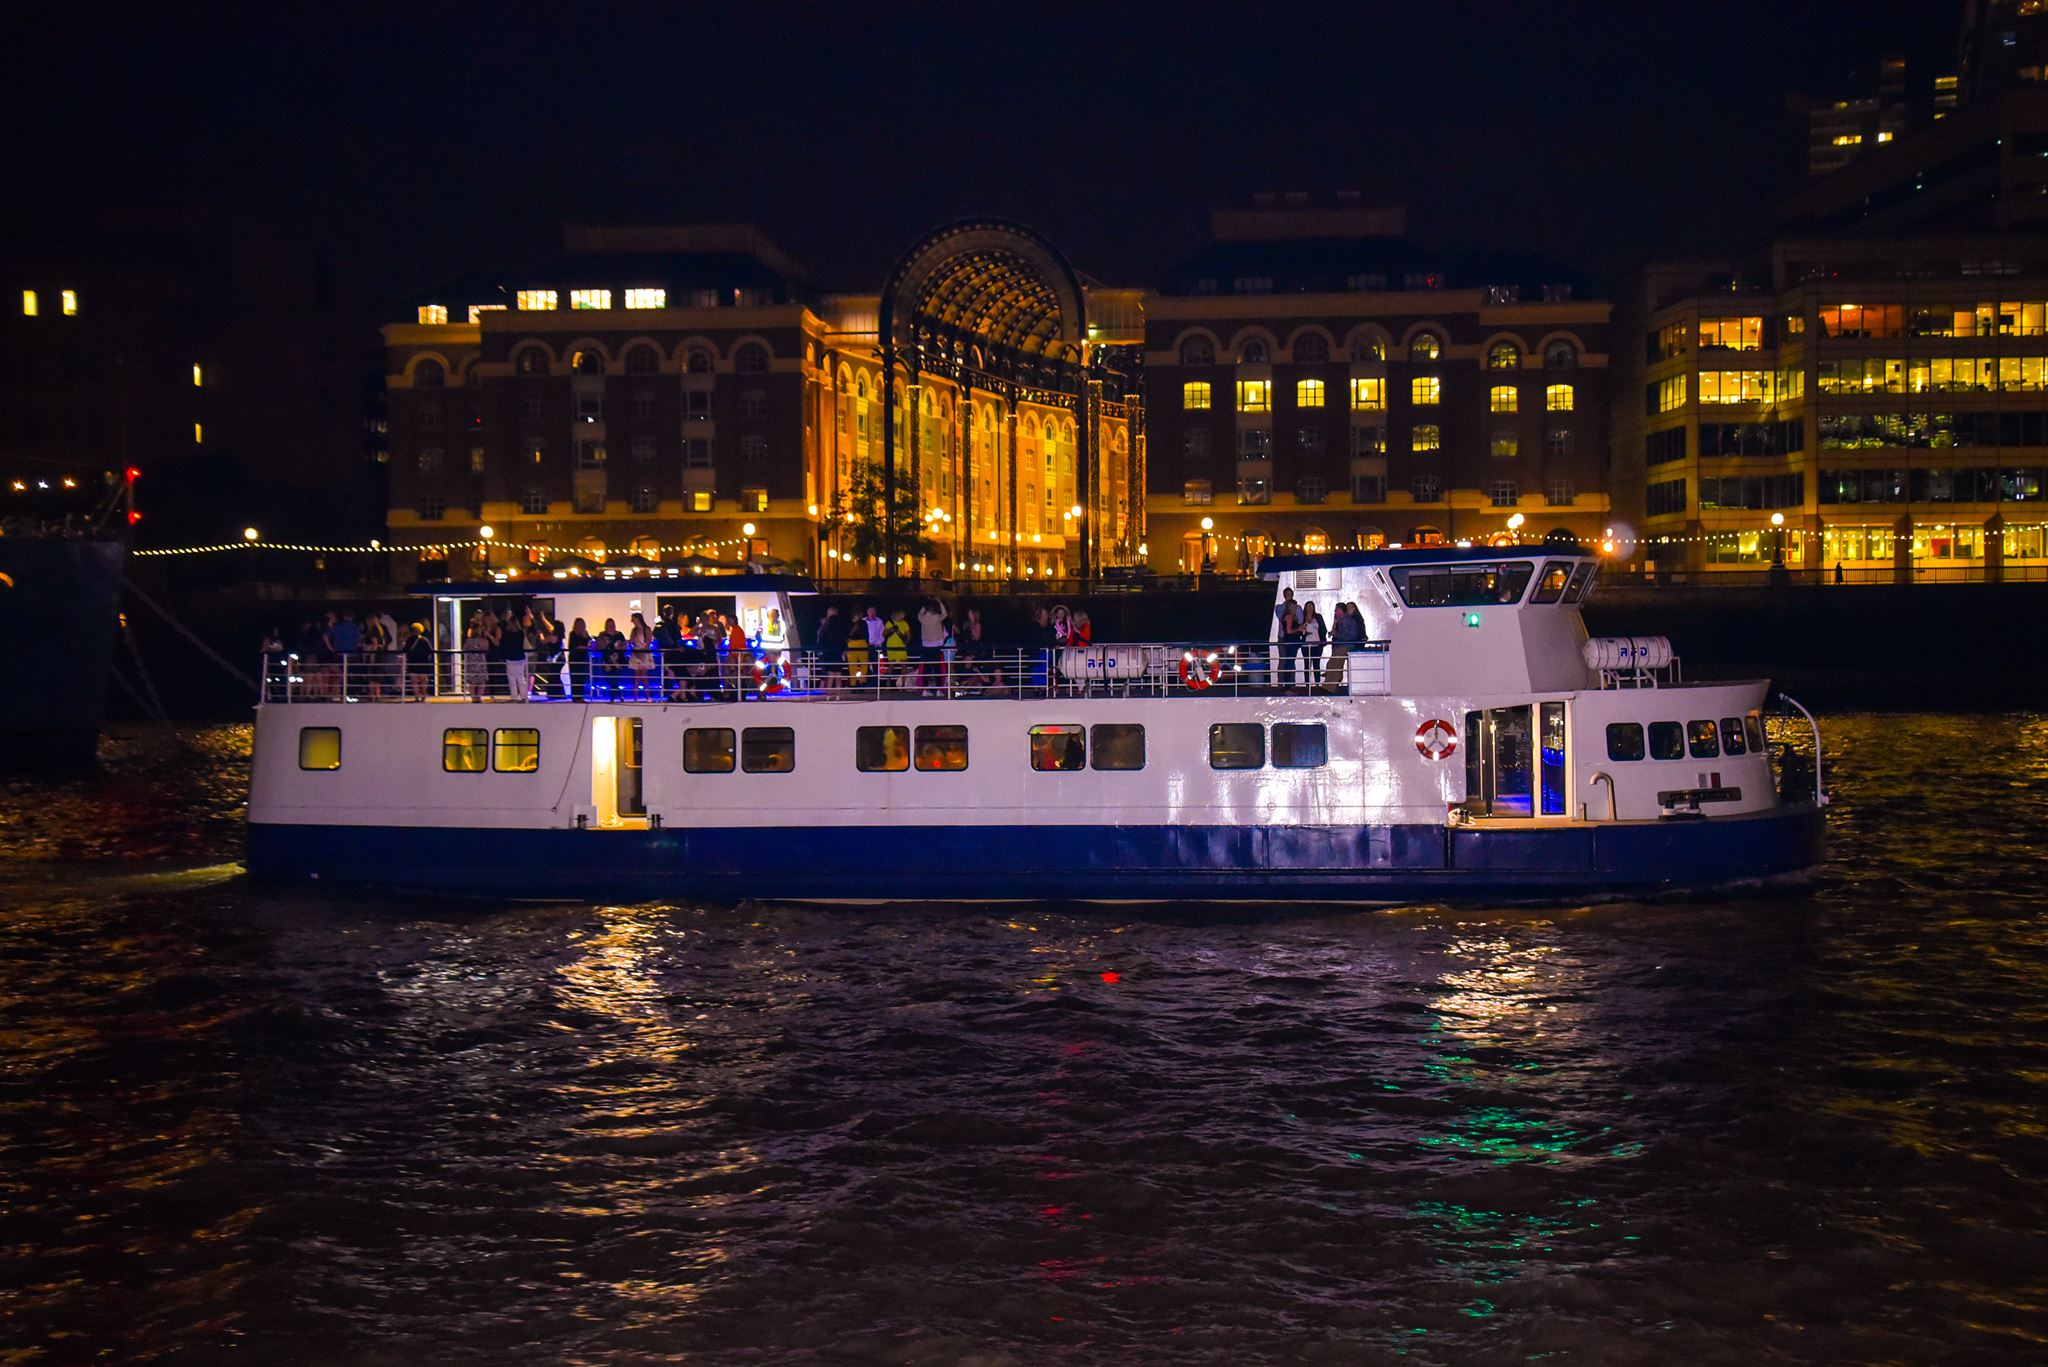 Christmas Boat Party London.London Party Boats Christmas Cruise London Boat Party